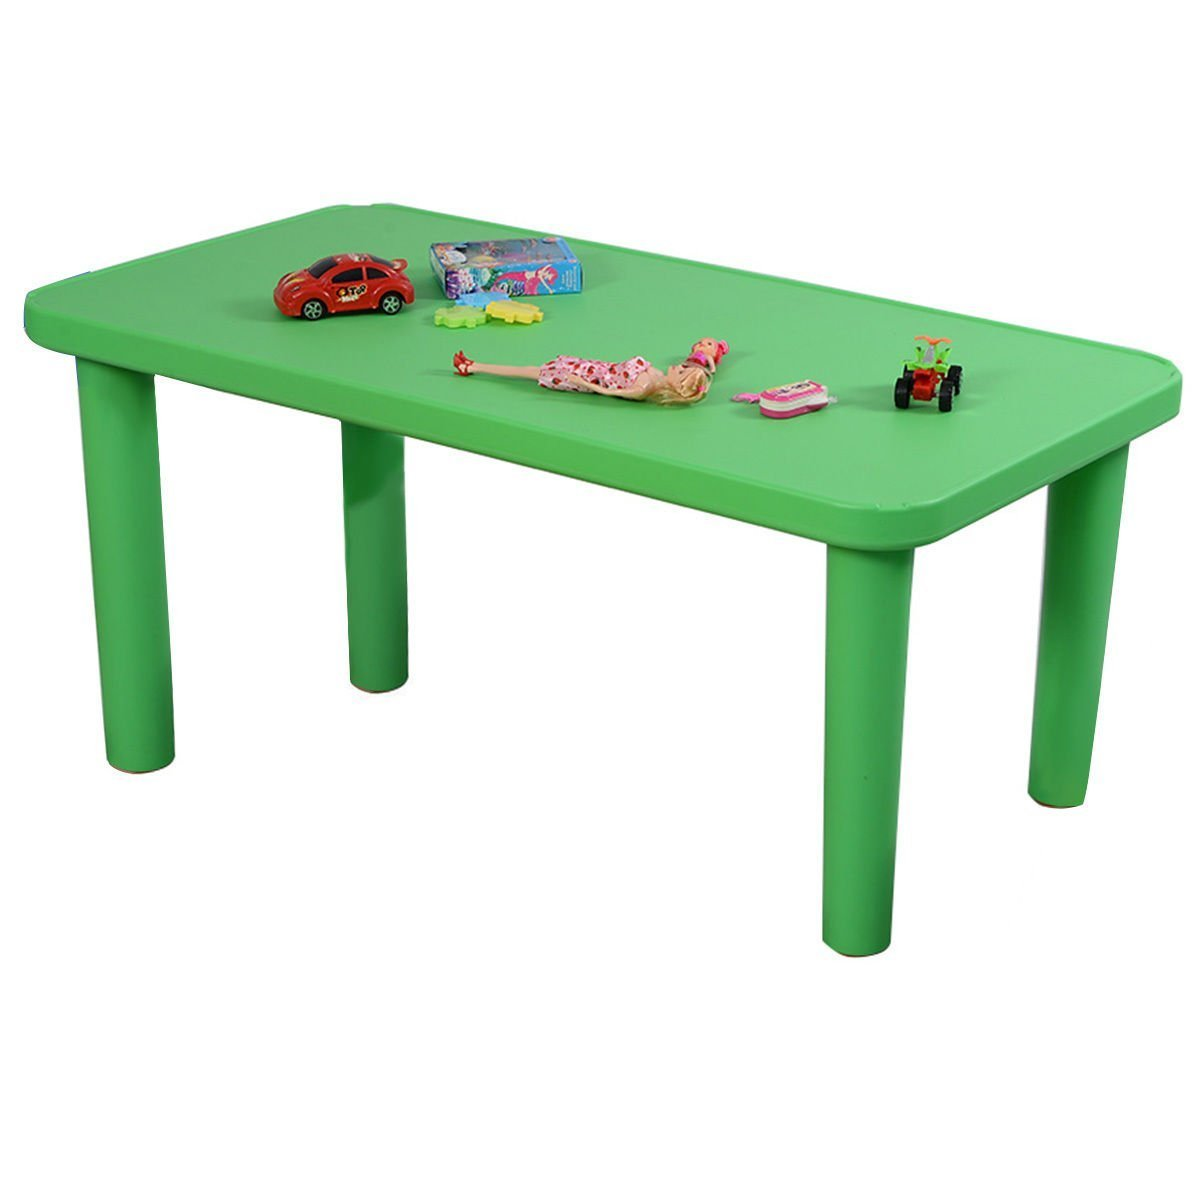 Costzon Kids Portable Plastic Table Learn and Play Activity School Home Furniture